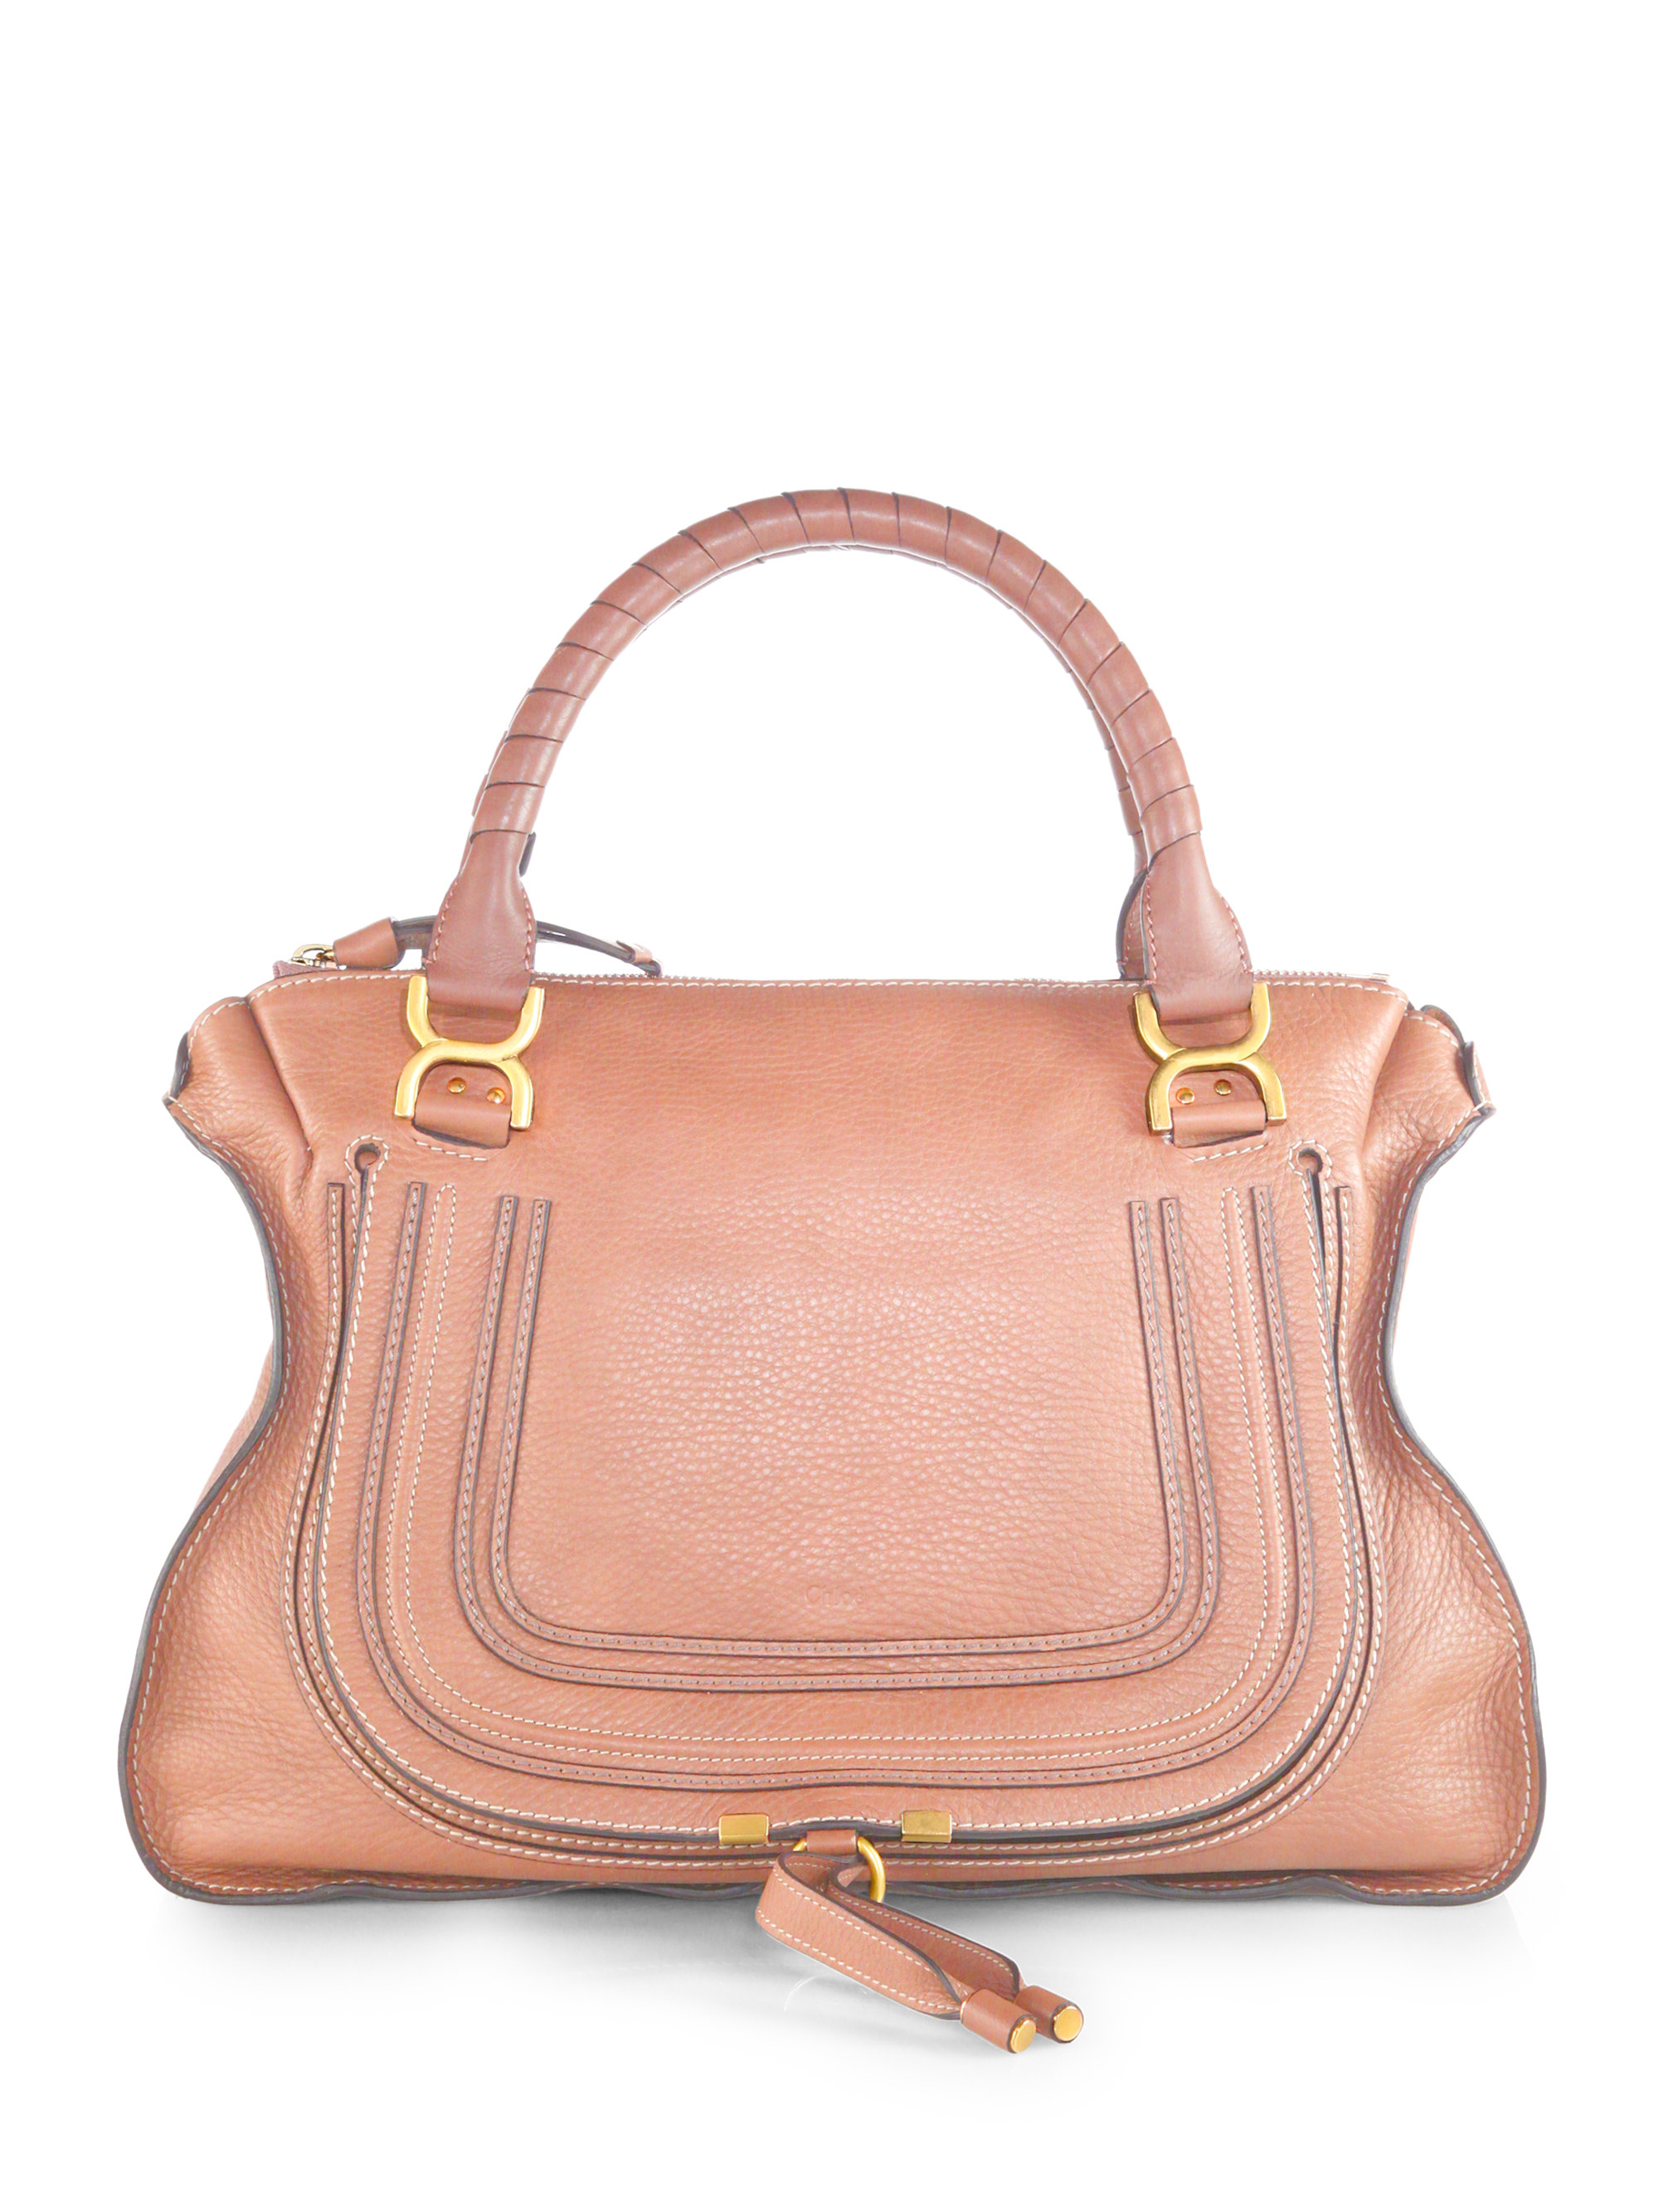 Chlo¨¦ Marcie Large Leather Satchel in Pink (ANEMONE PINK) | Lyst